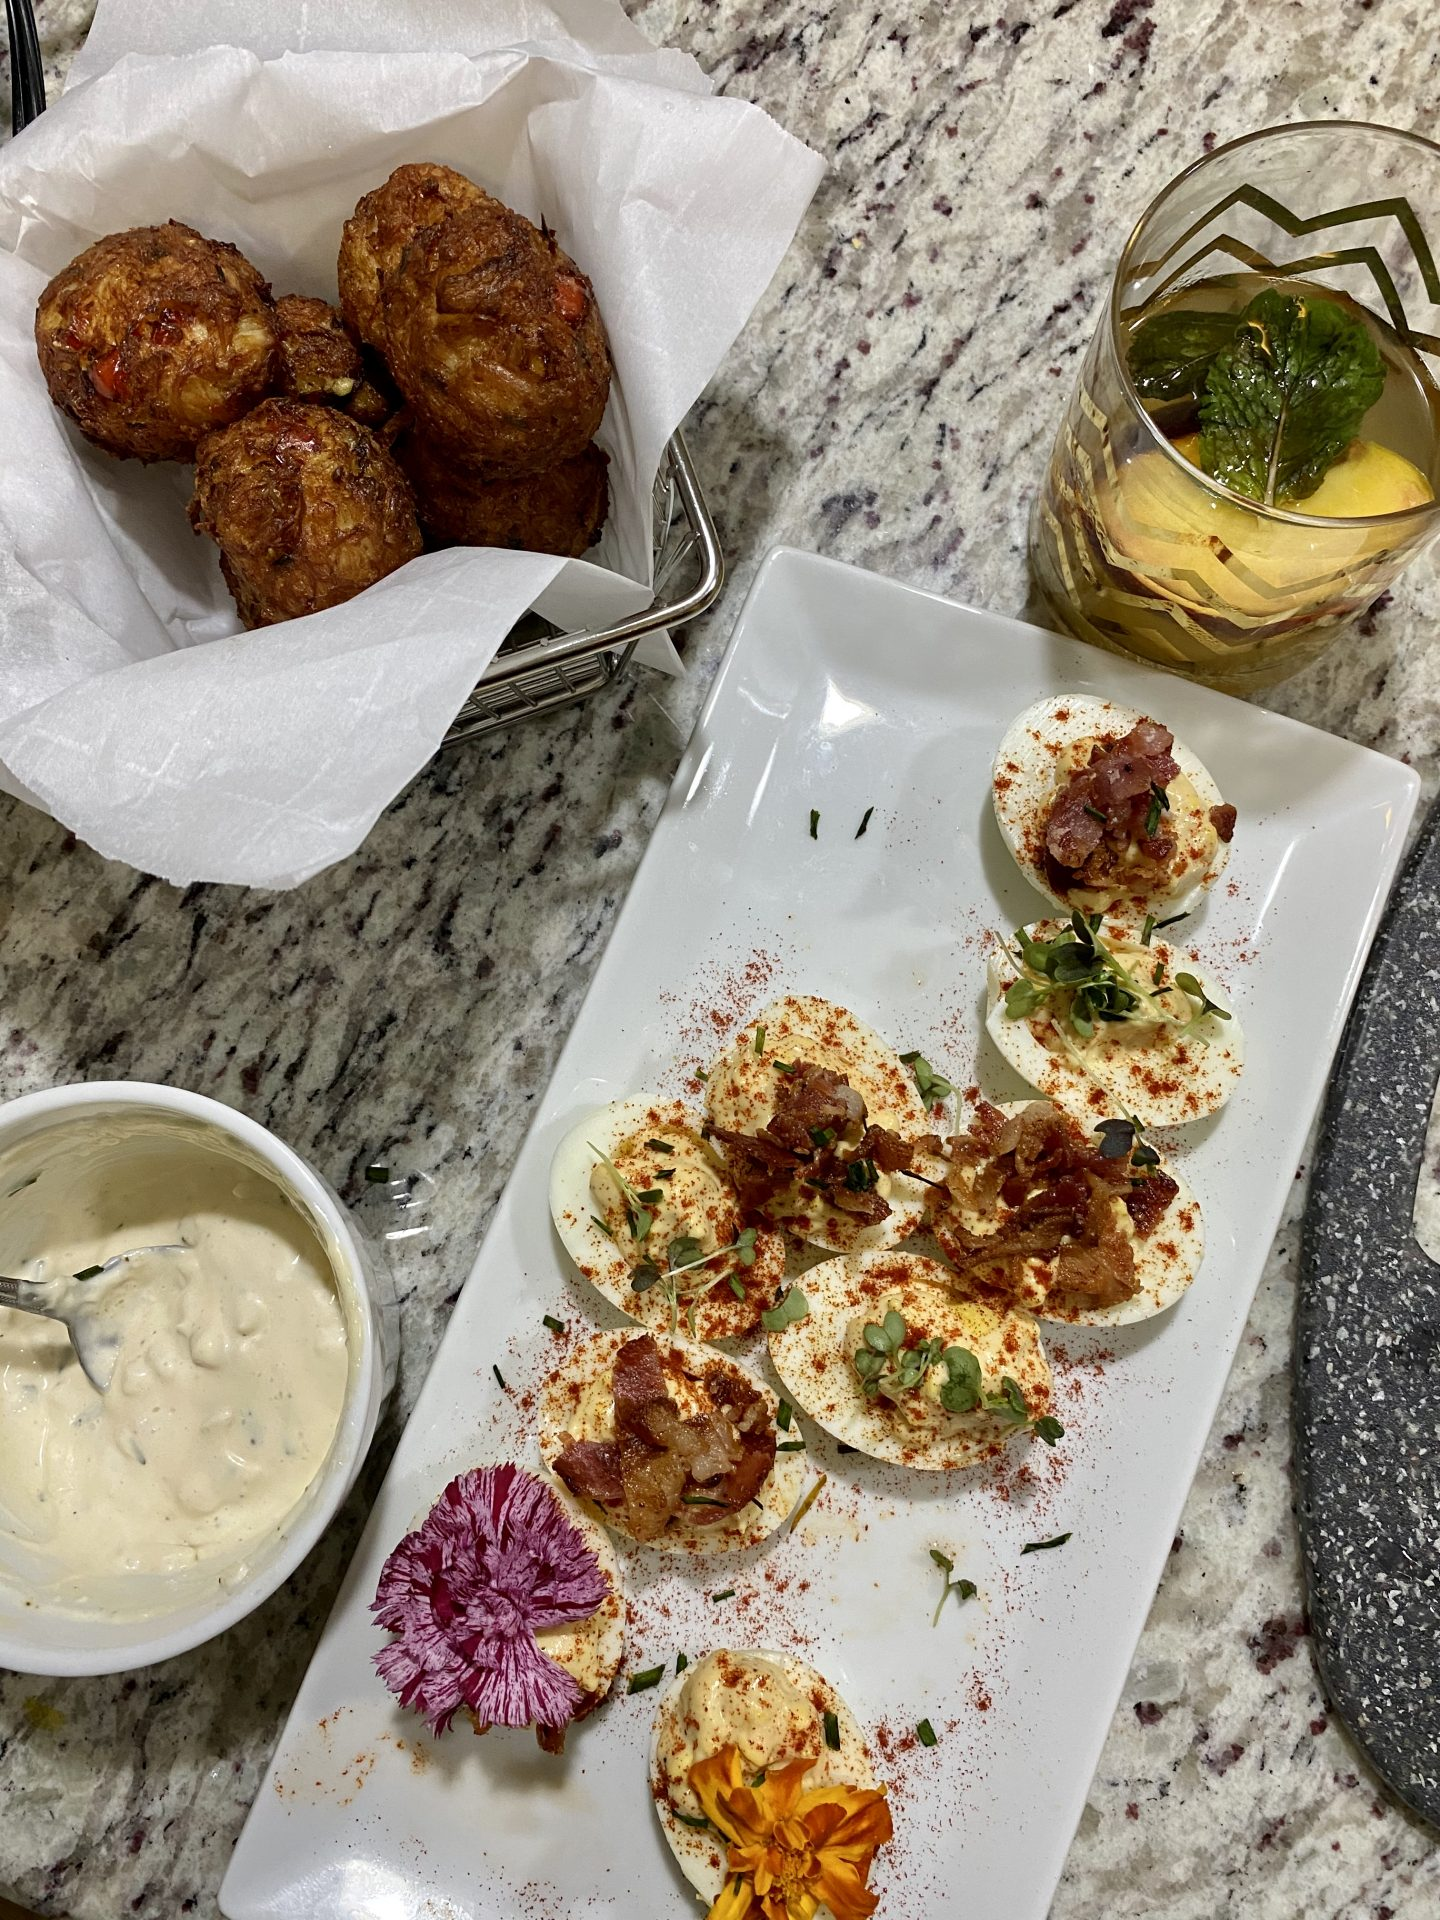 Juneteenth Appetizers: Crab Beignets & Deviled Eggs